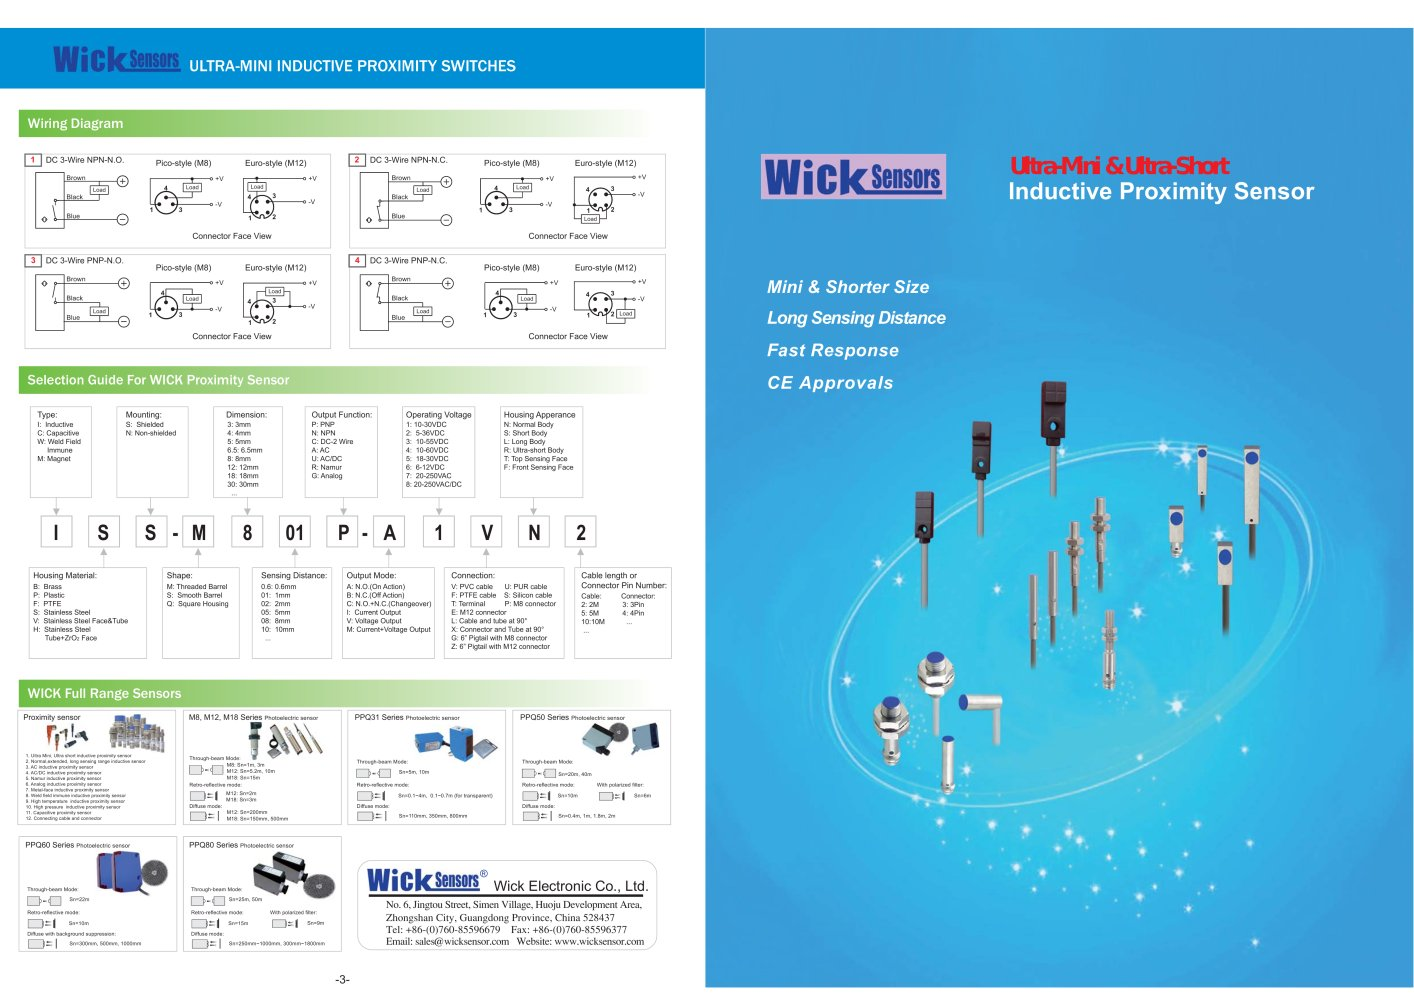 hight resolution of wick ultra mini shorter inductive proximity switches 1 2 pages